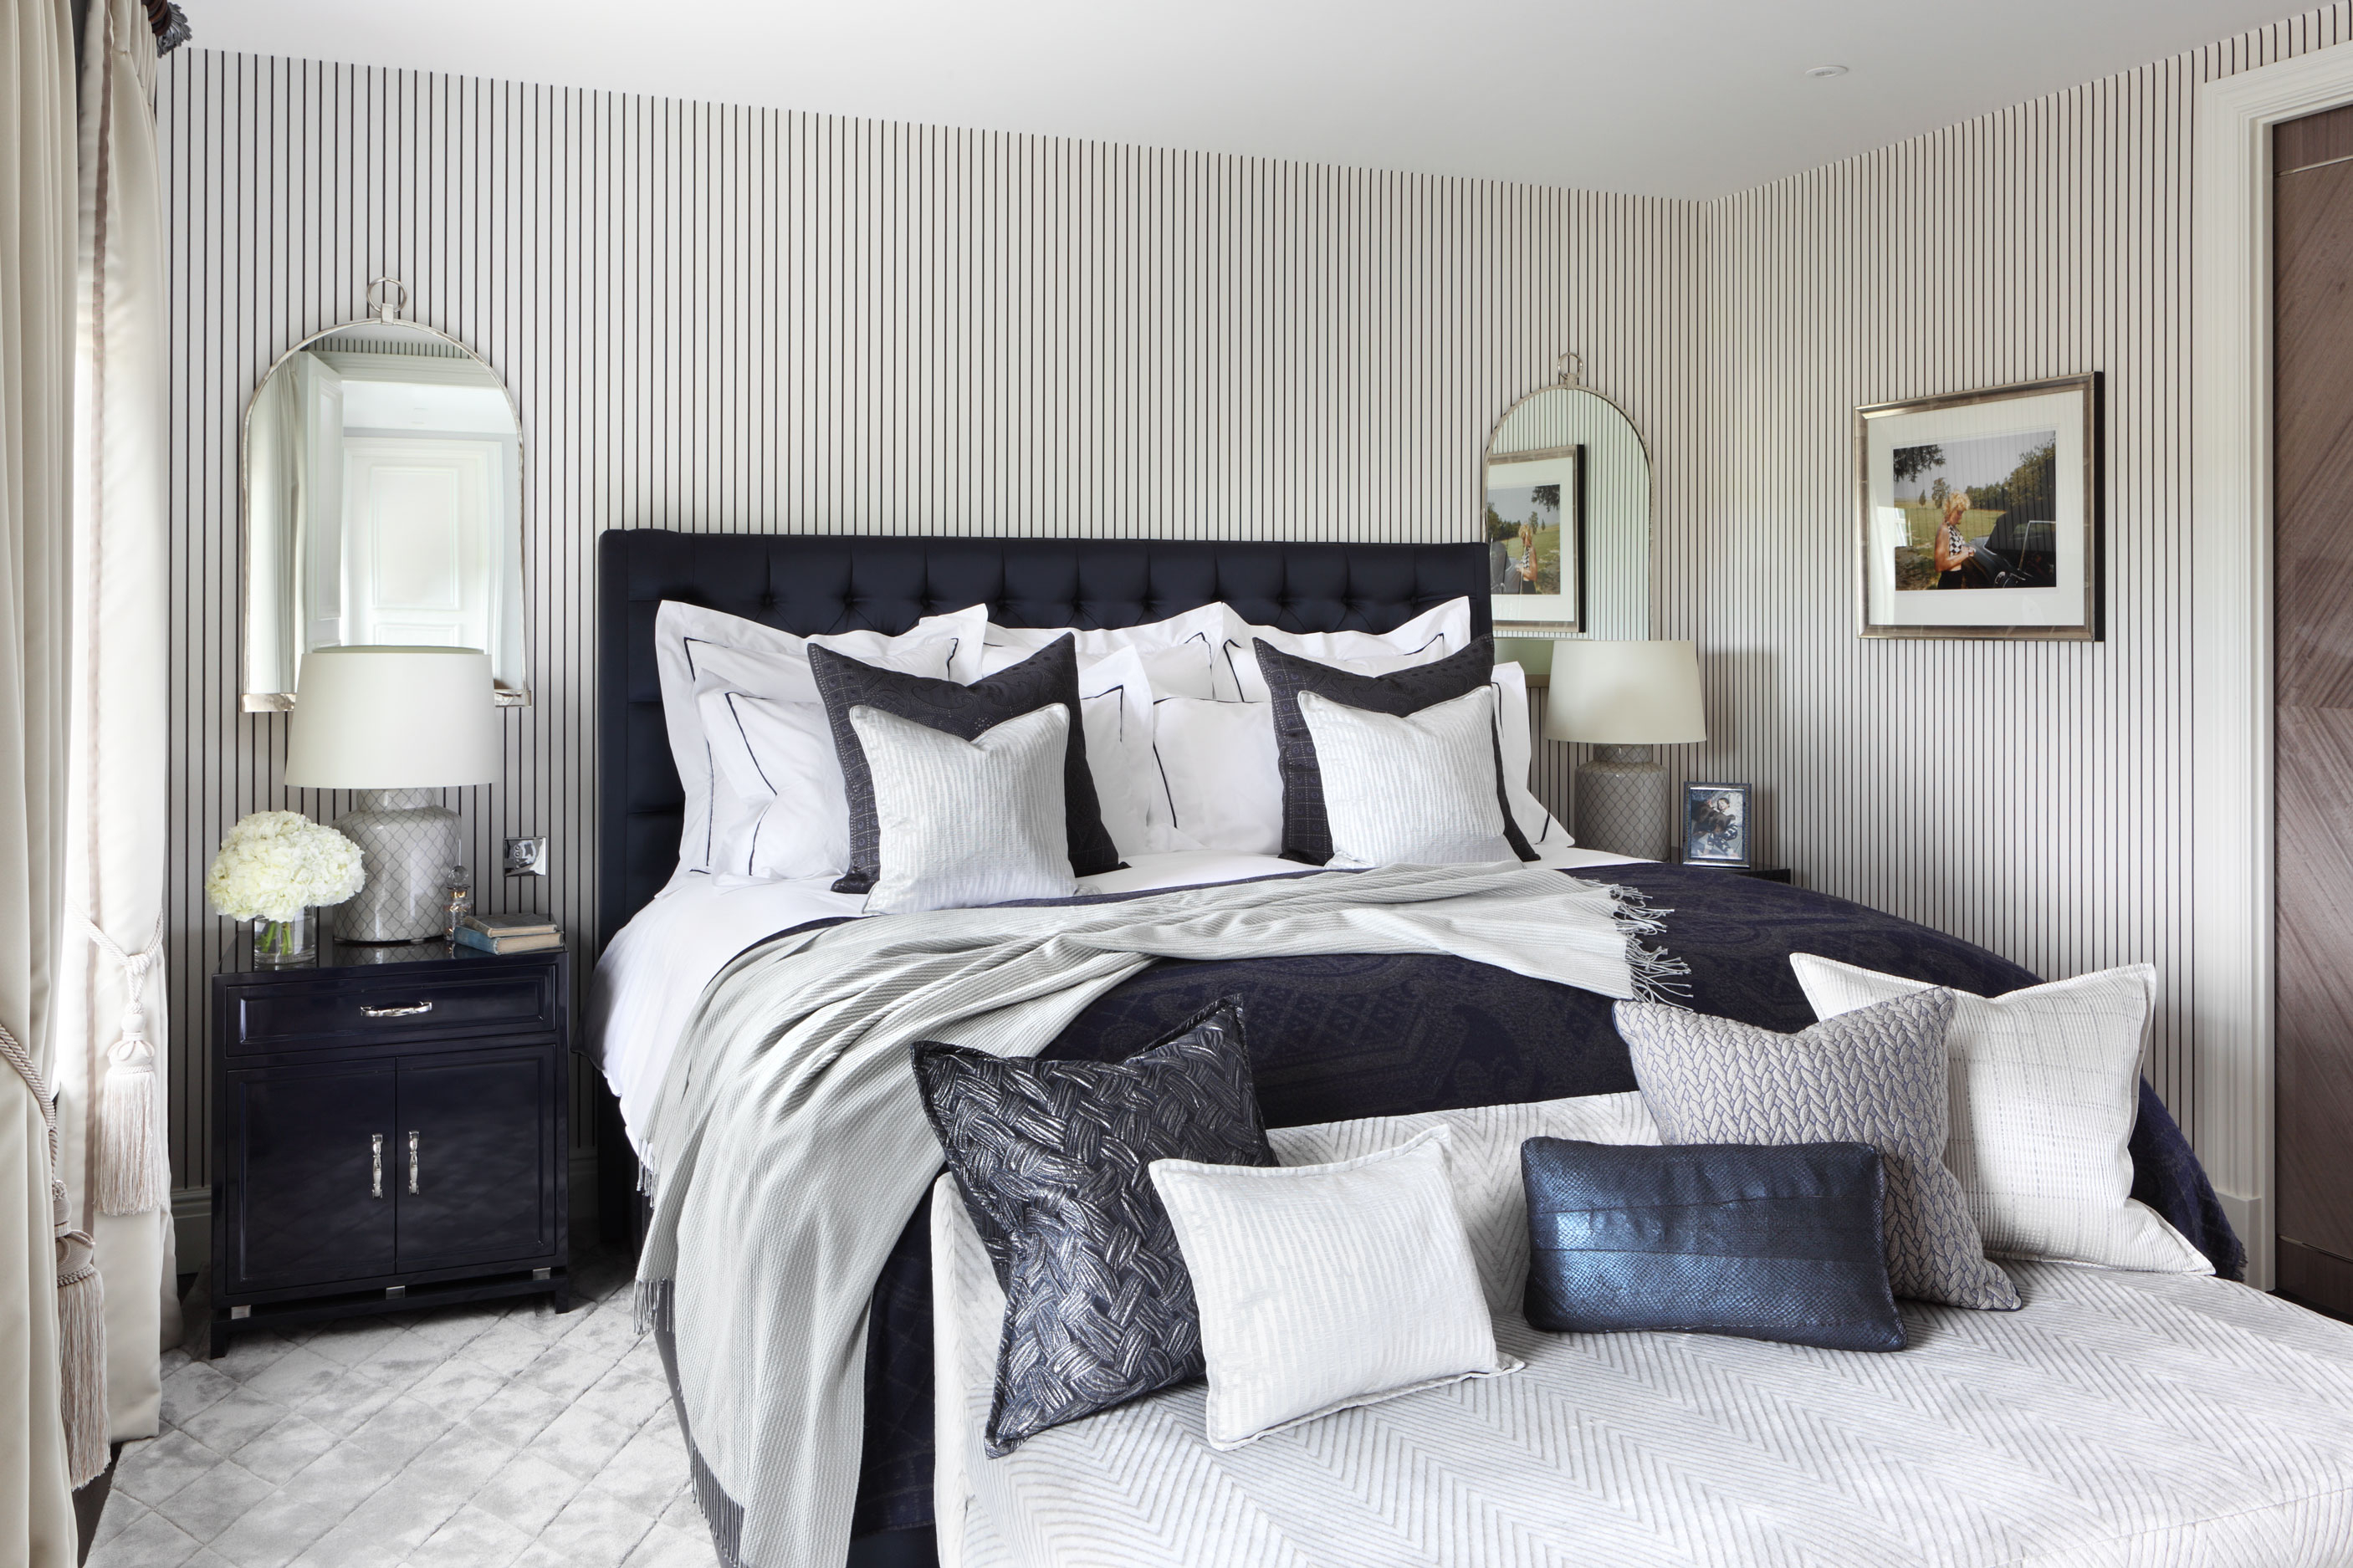 Bedroom Ideas 52 Modern Design Ideas For Your Bedroom The Luxpad regarding Modern Bedroom Styles